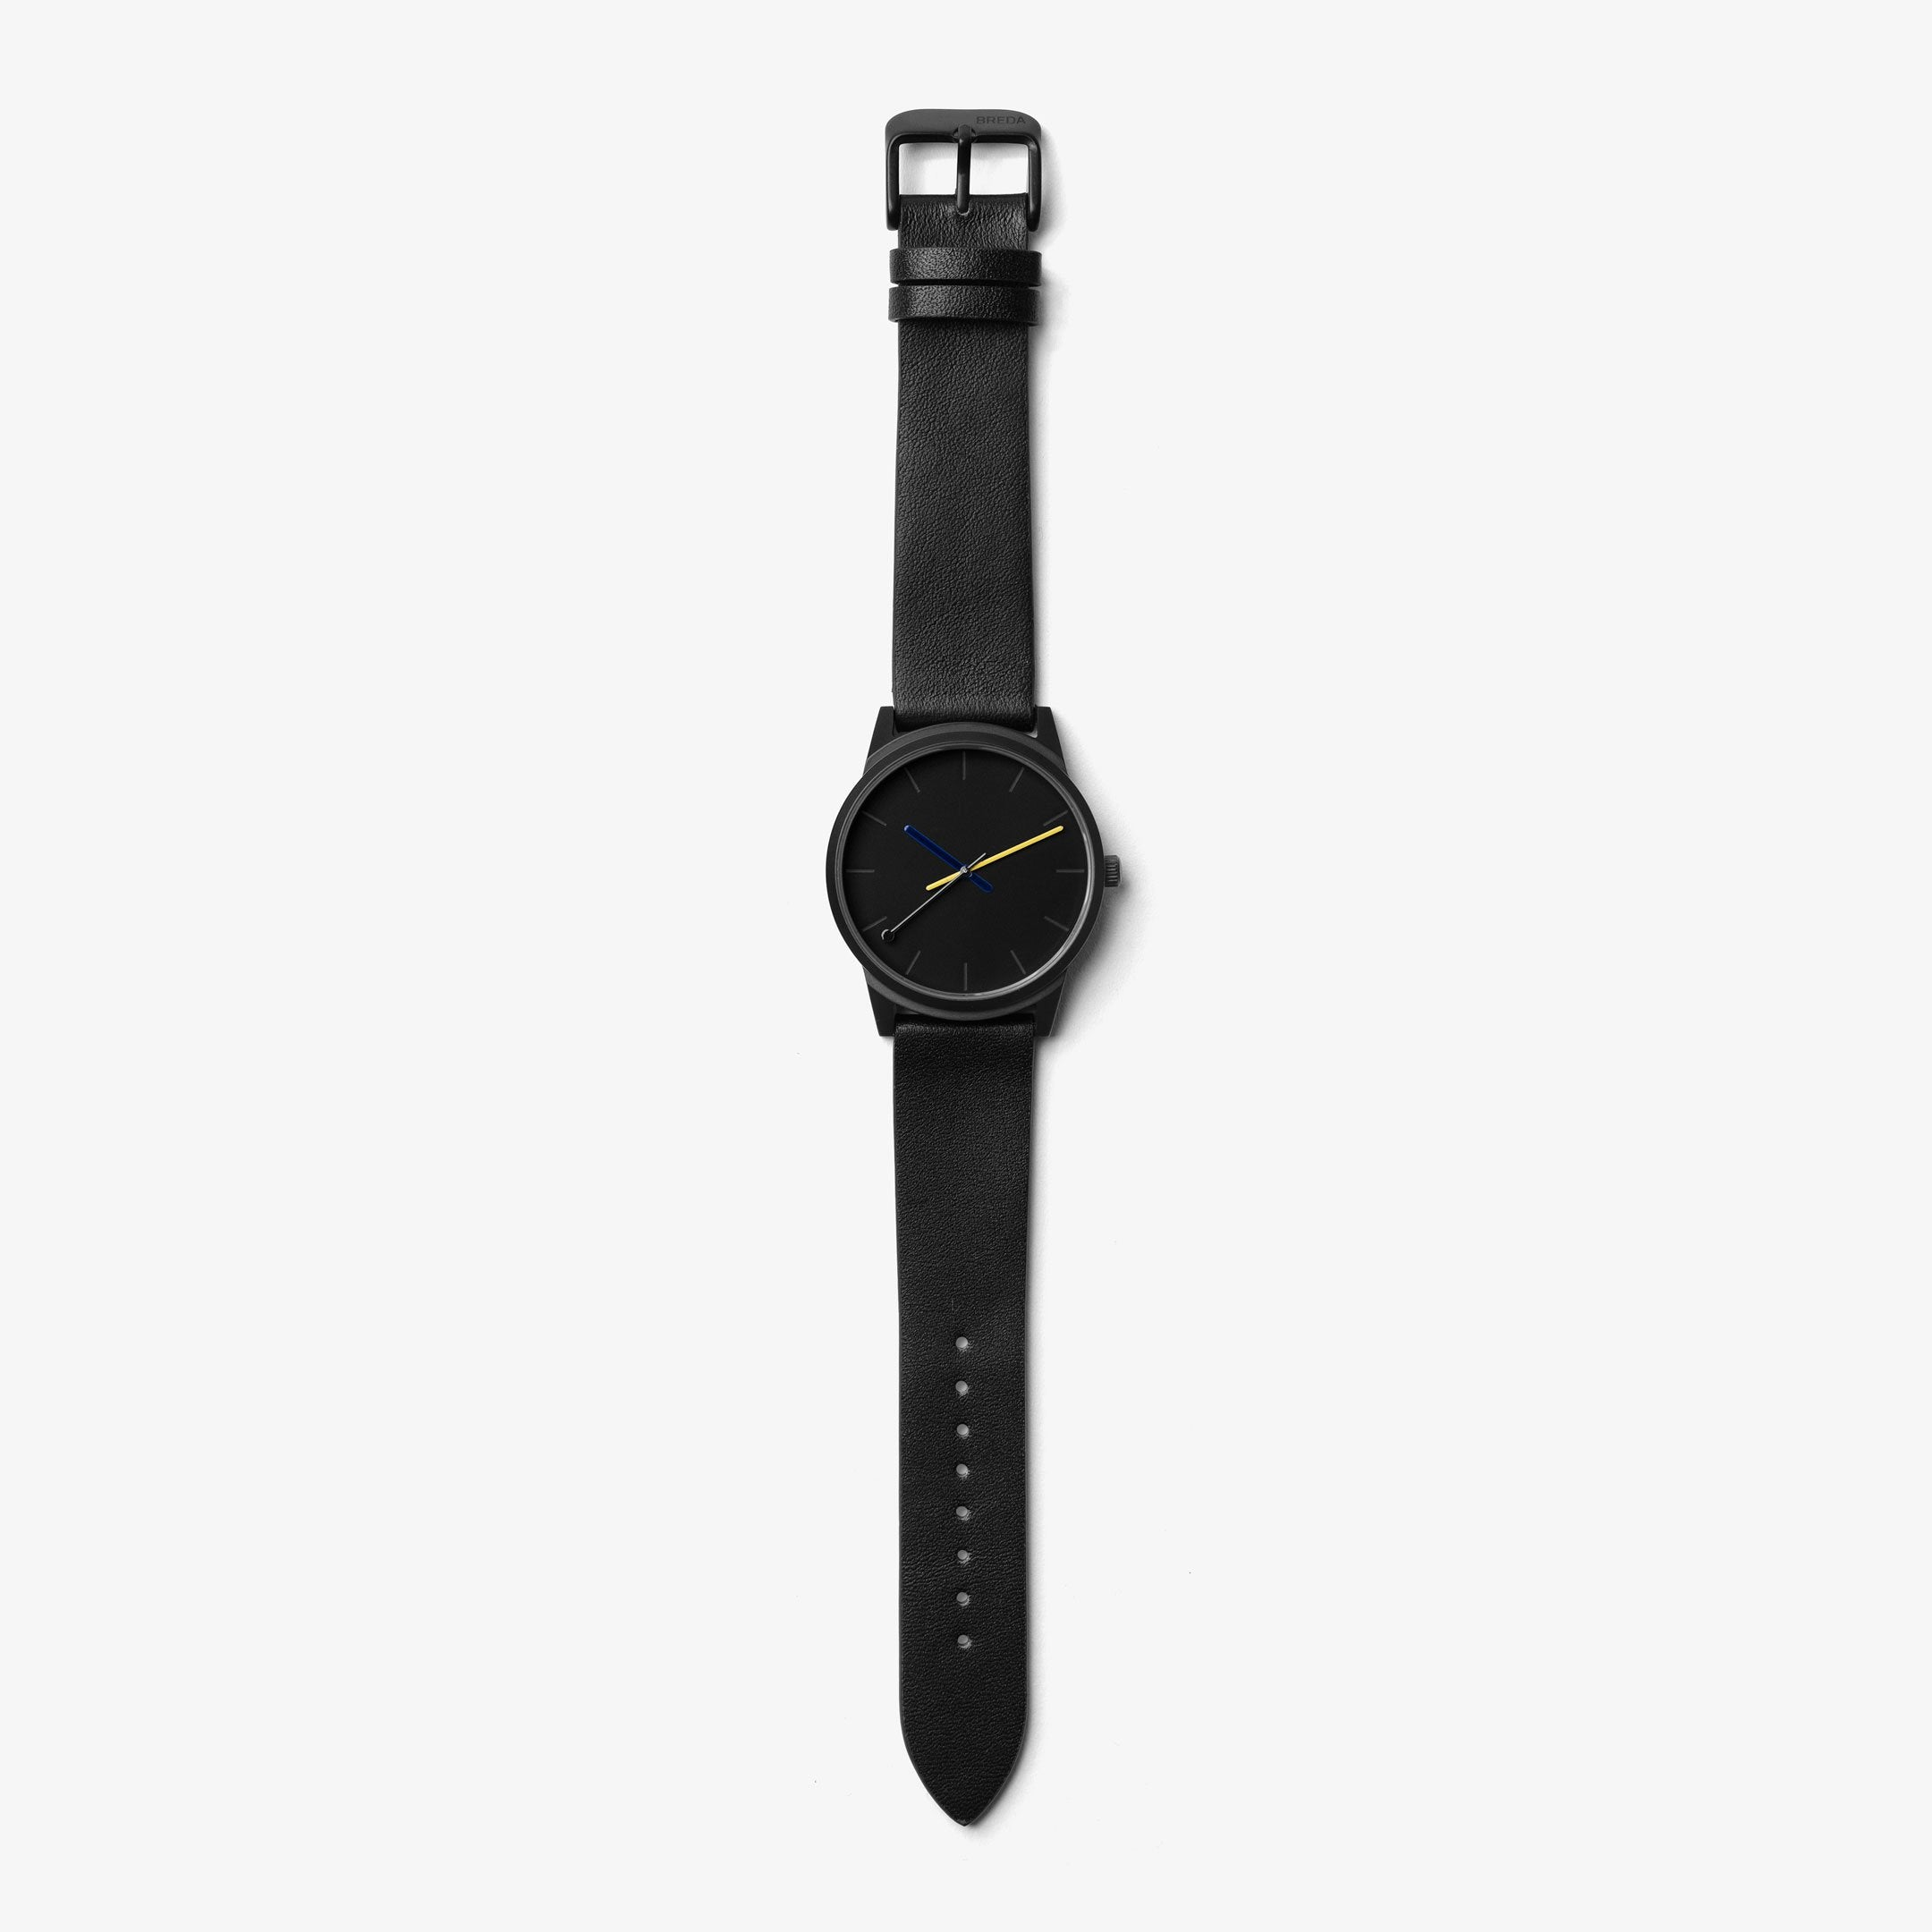 //cdn.shopify.com/s/files/1/0879/6650/products/breda-poketo-5021a-spectra-black-leather-band-collaboration-watch-long_1024x1024.jpg?v=1557421007